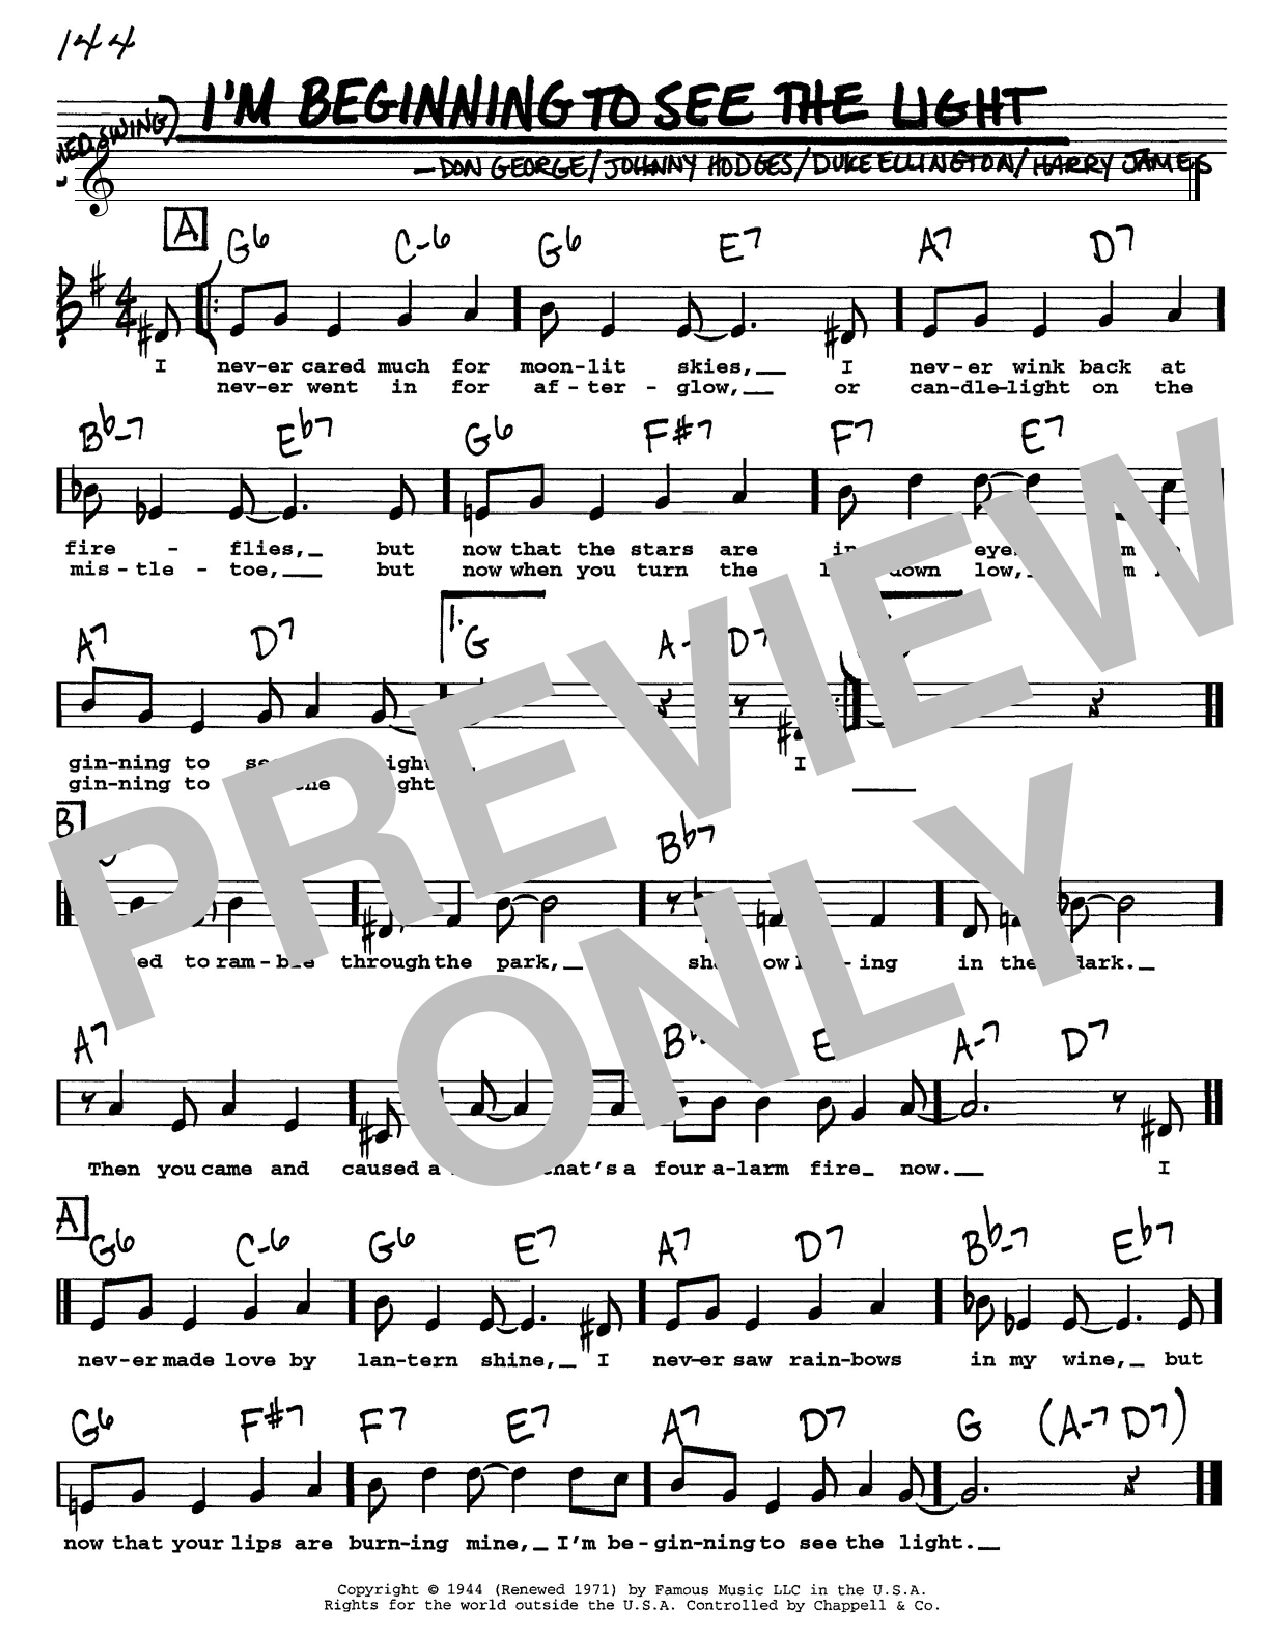 Duke Ellington I'm Beginning To See The Light sheet music notes and chords